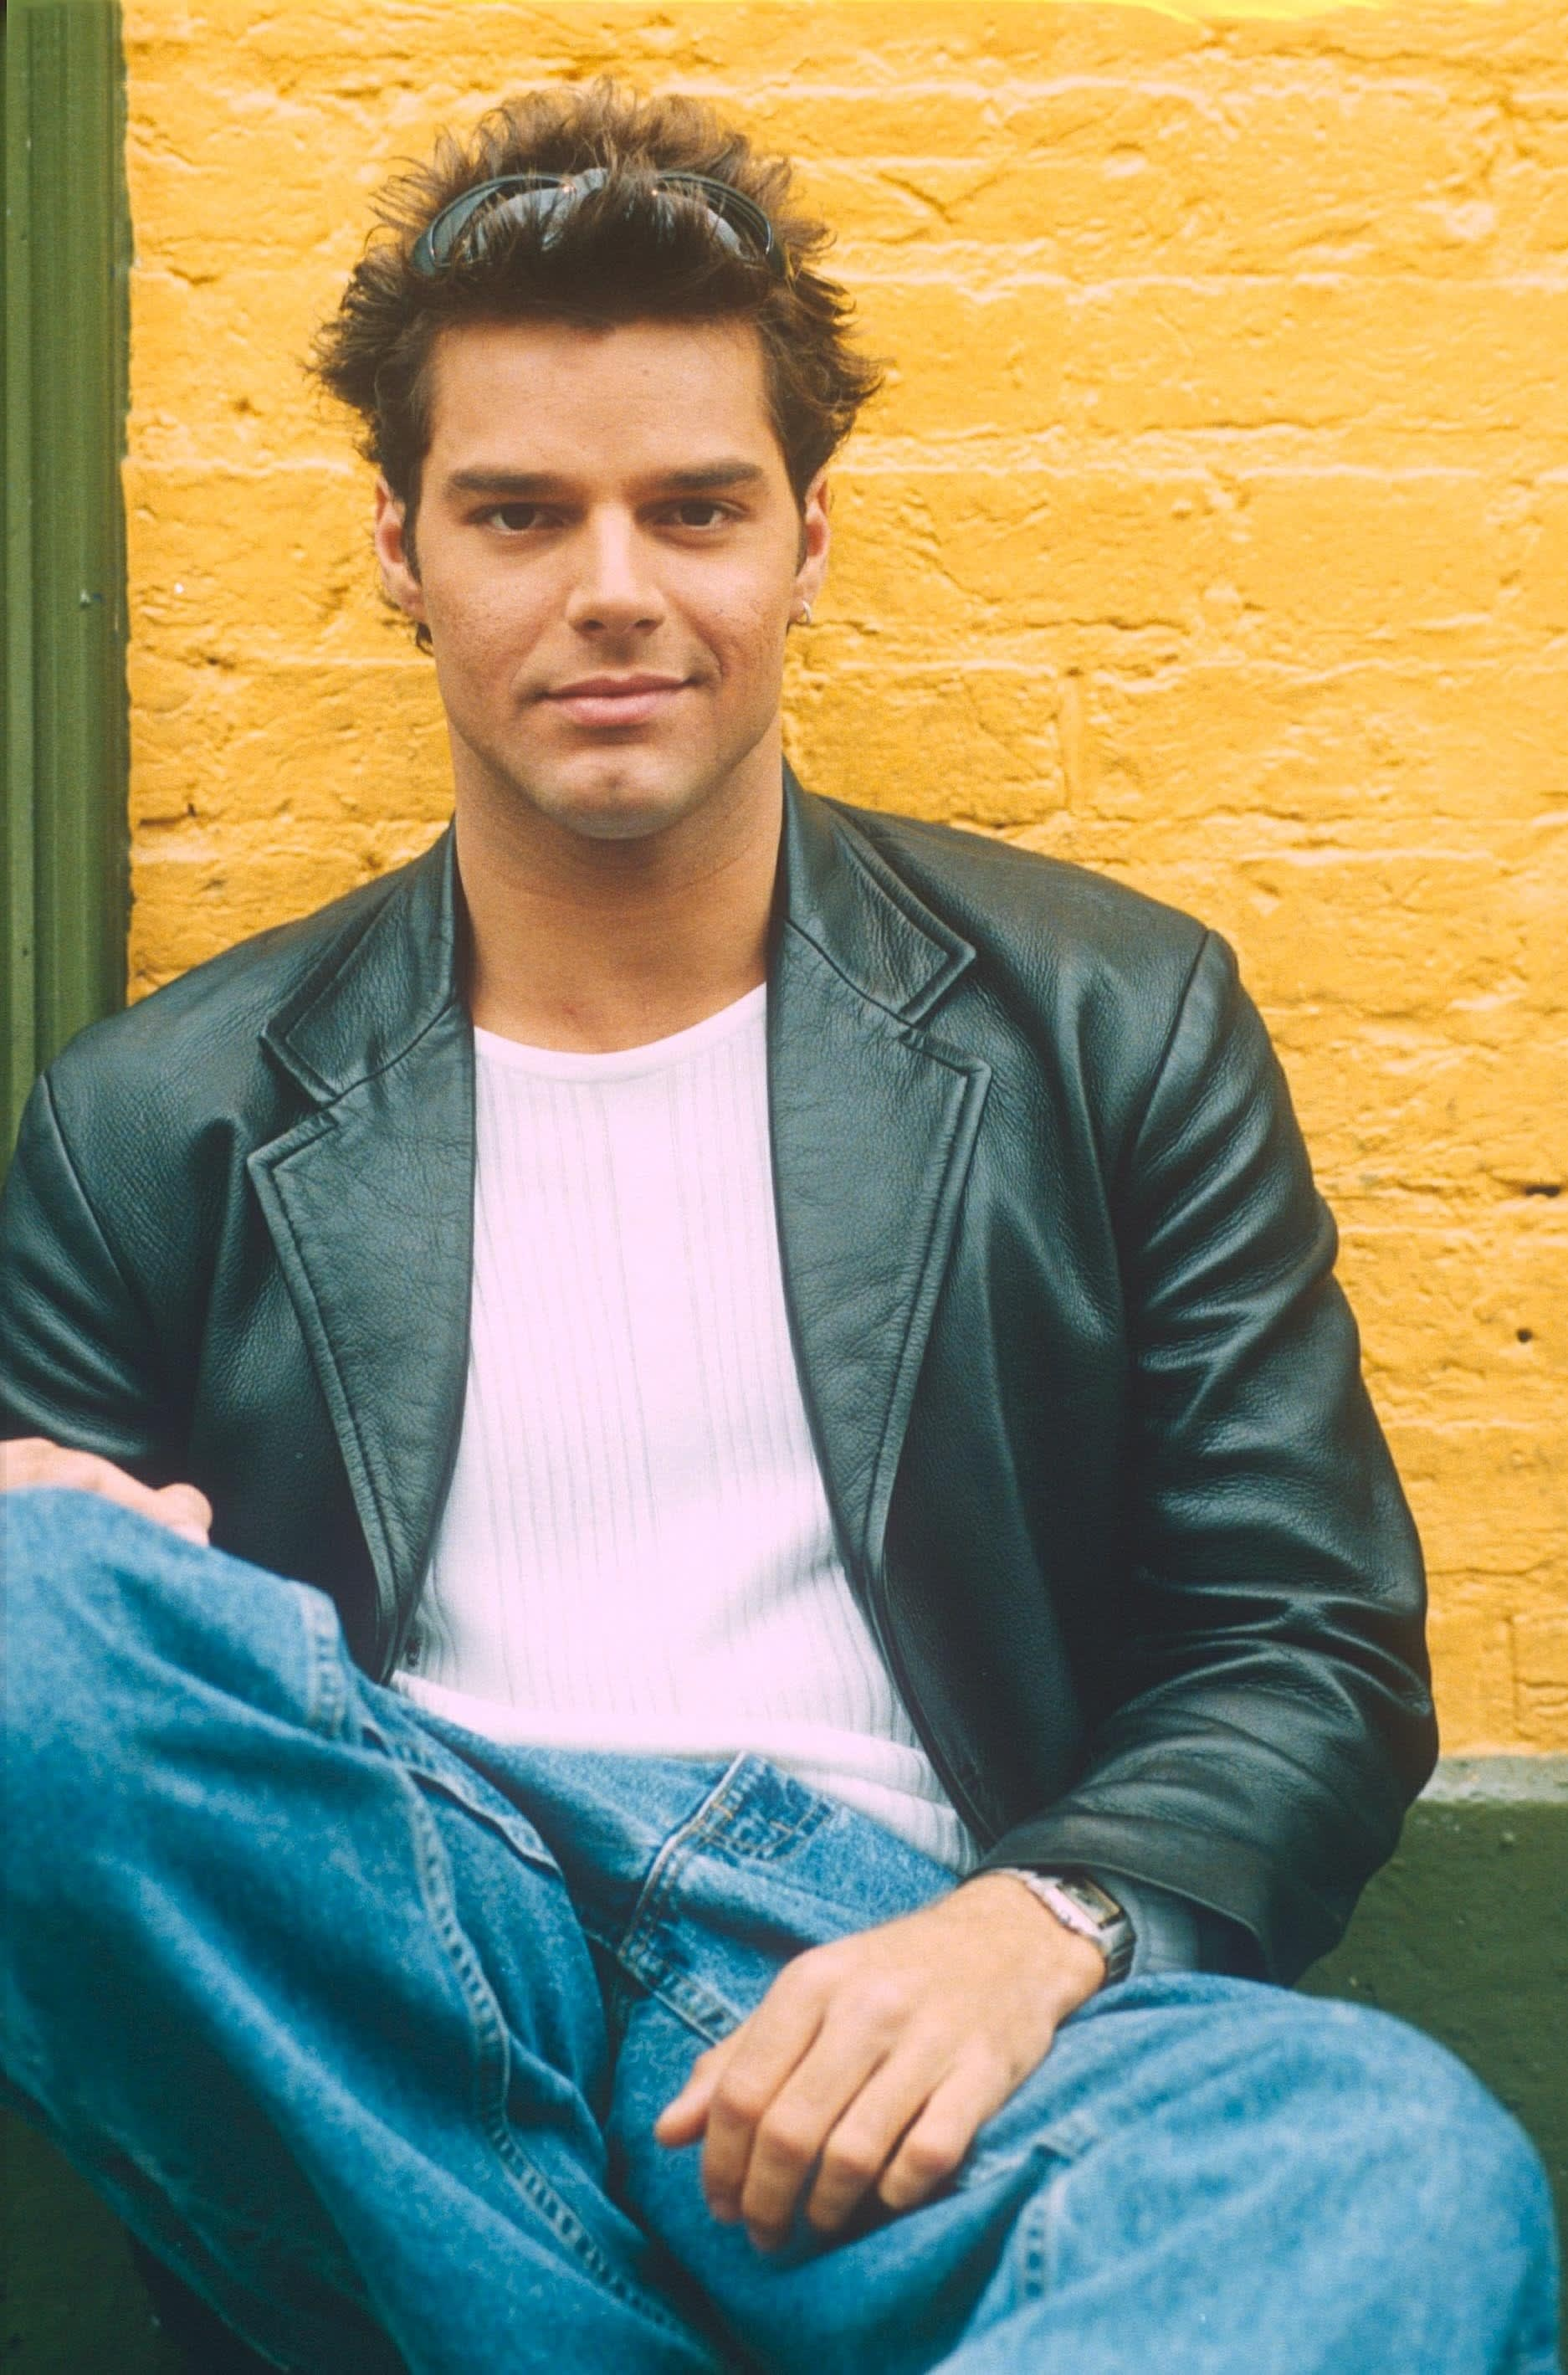 Martin posing for a portrait in 1997